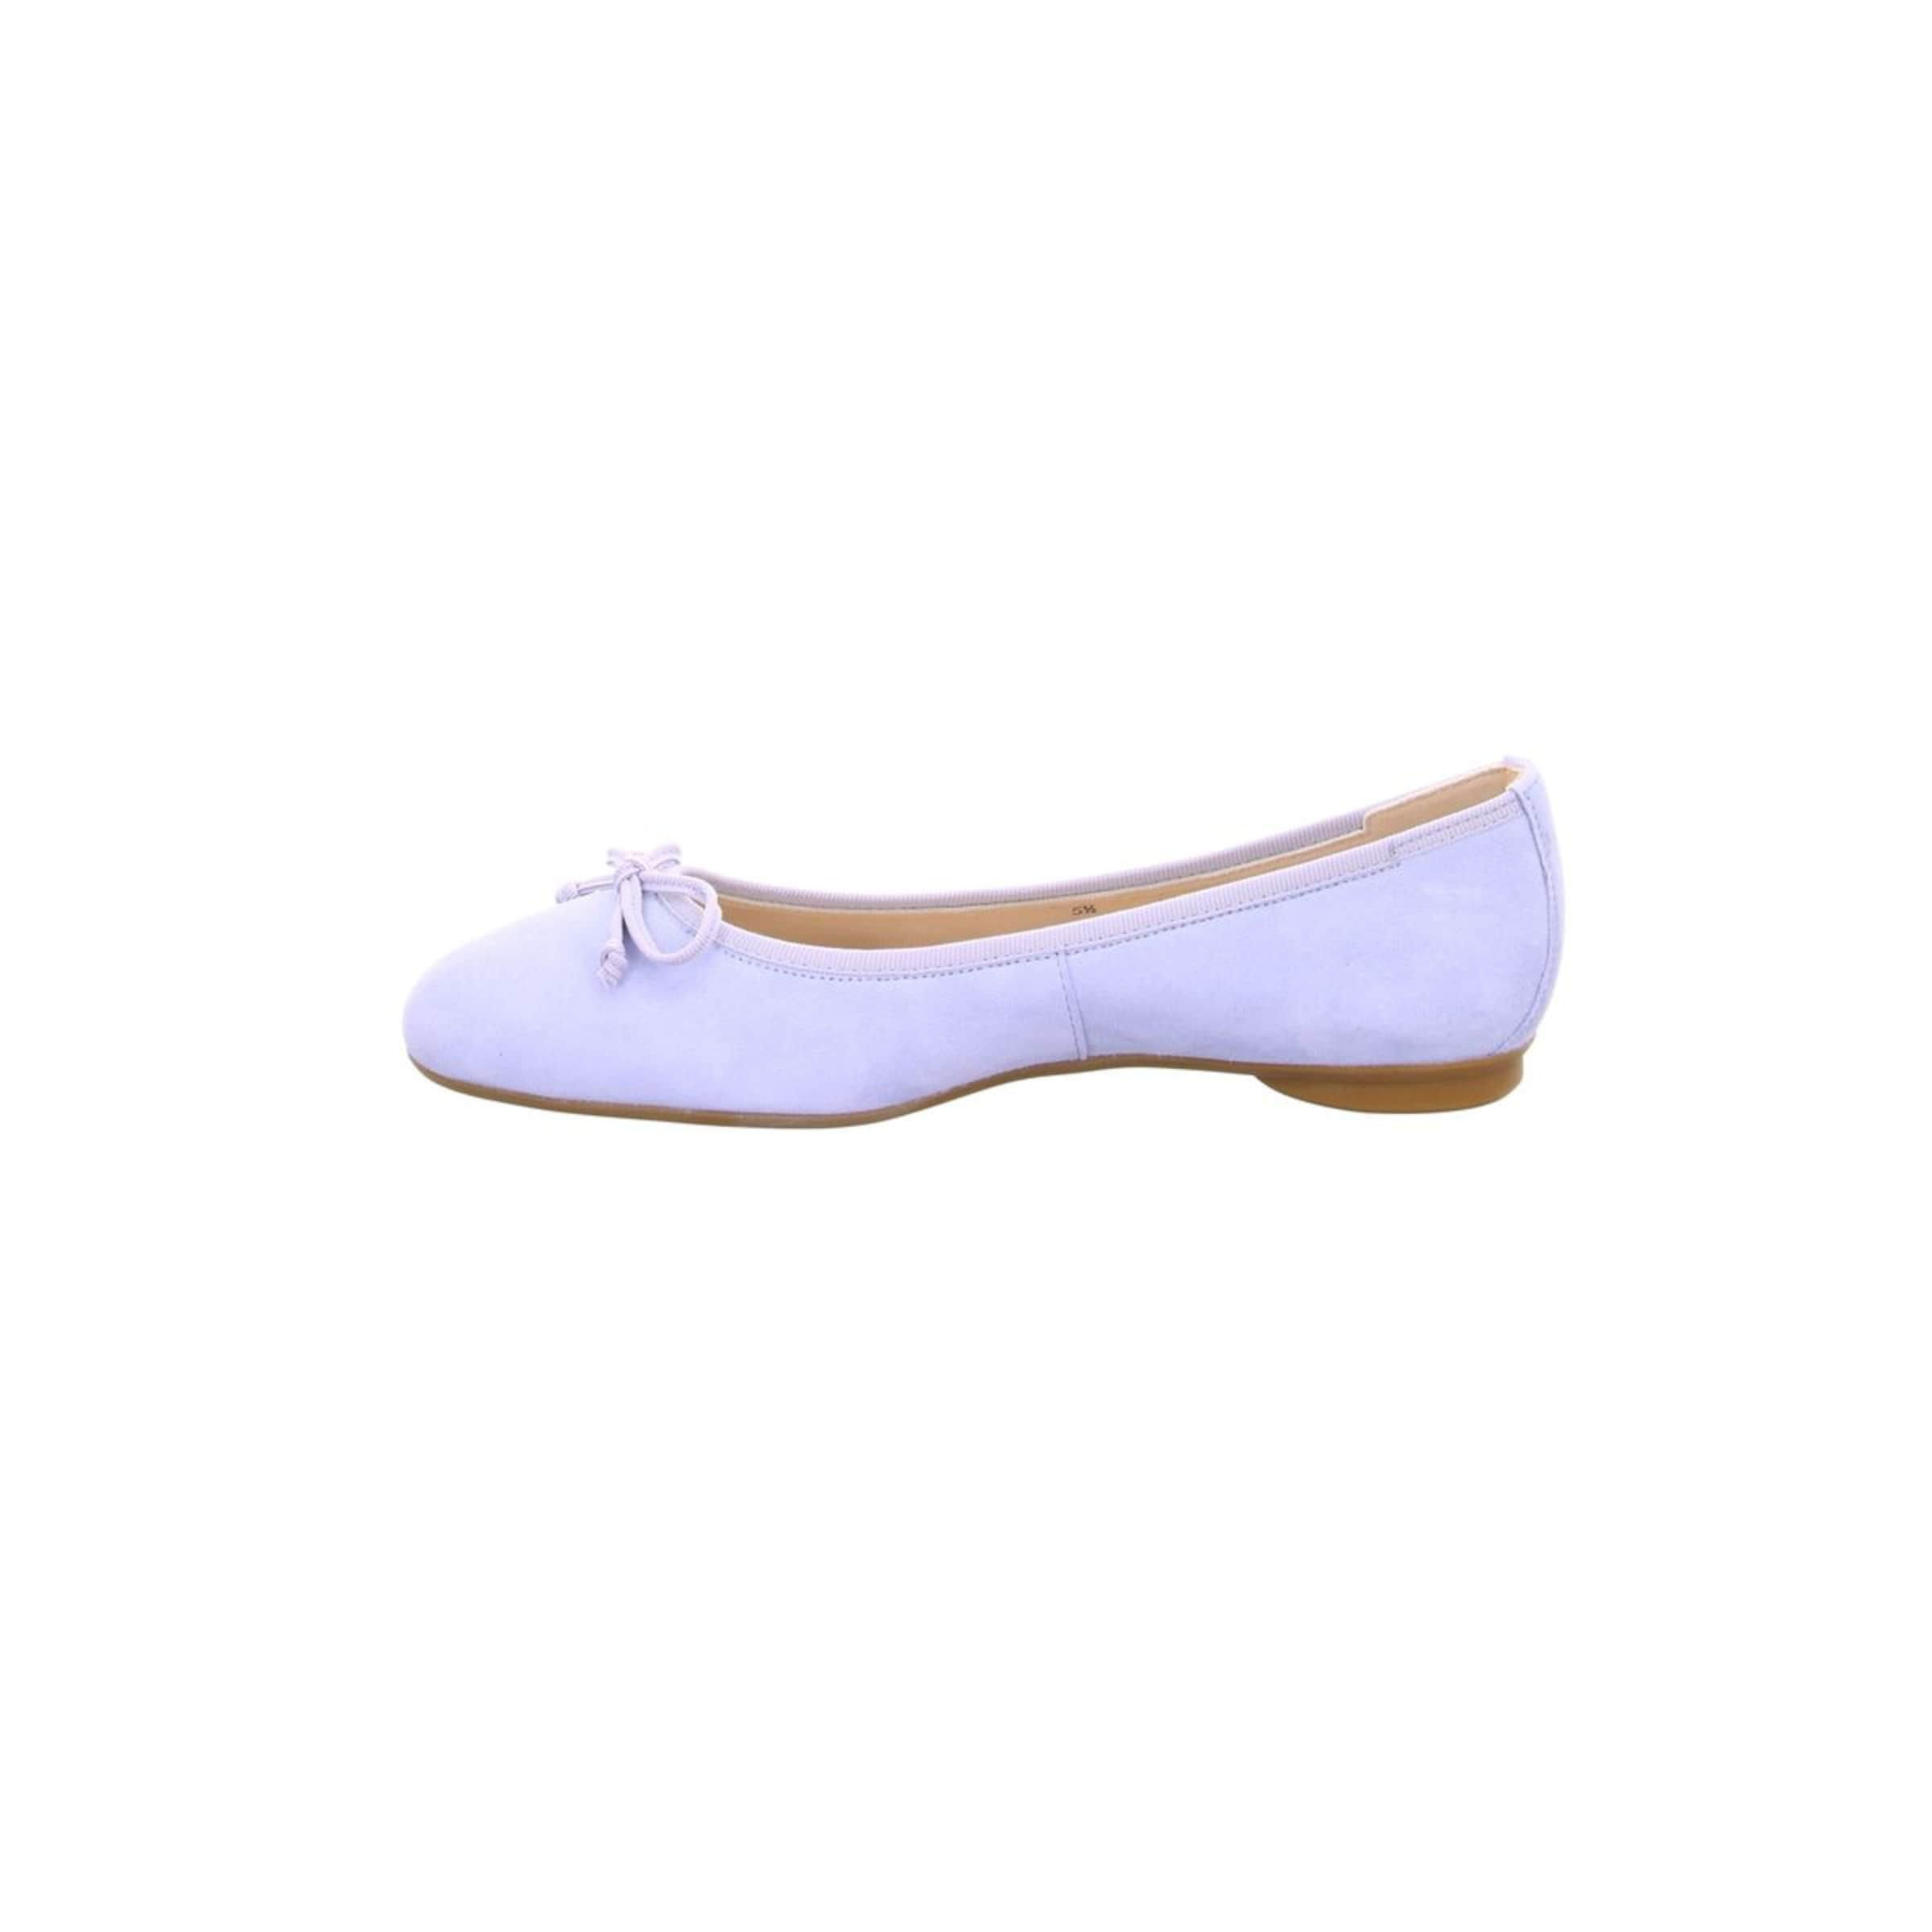 In Paul Green Helllila Ballerinas Paul Green Ballerinas In Paul Helllila FTKJl1c